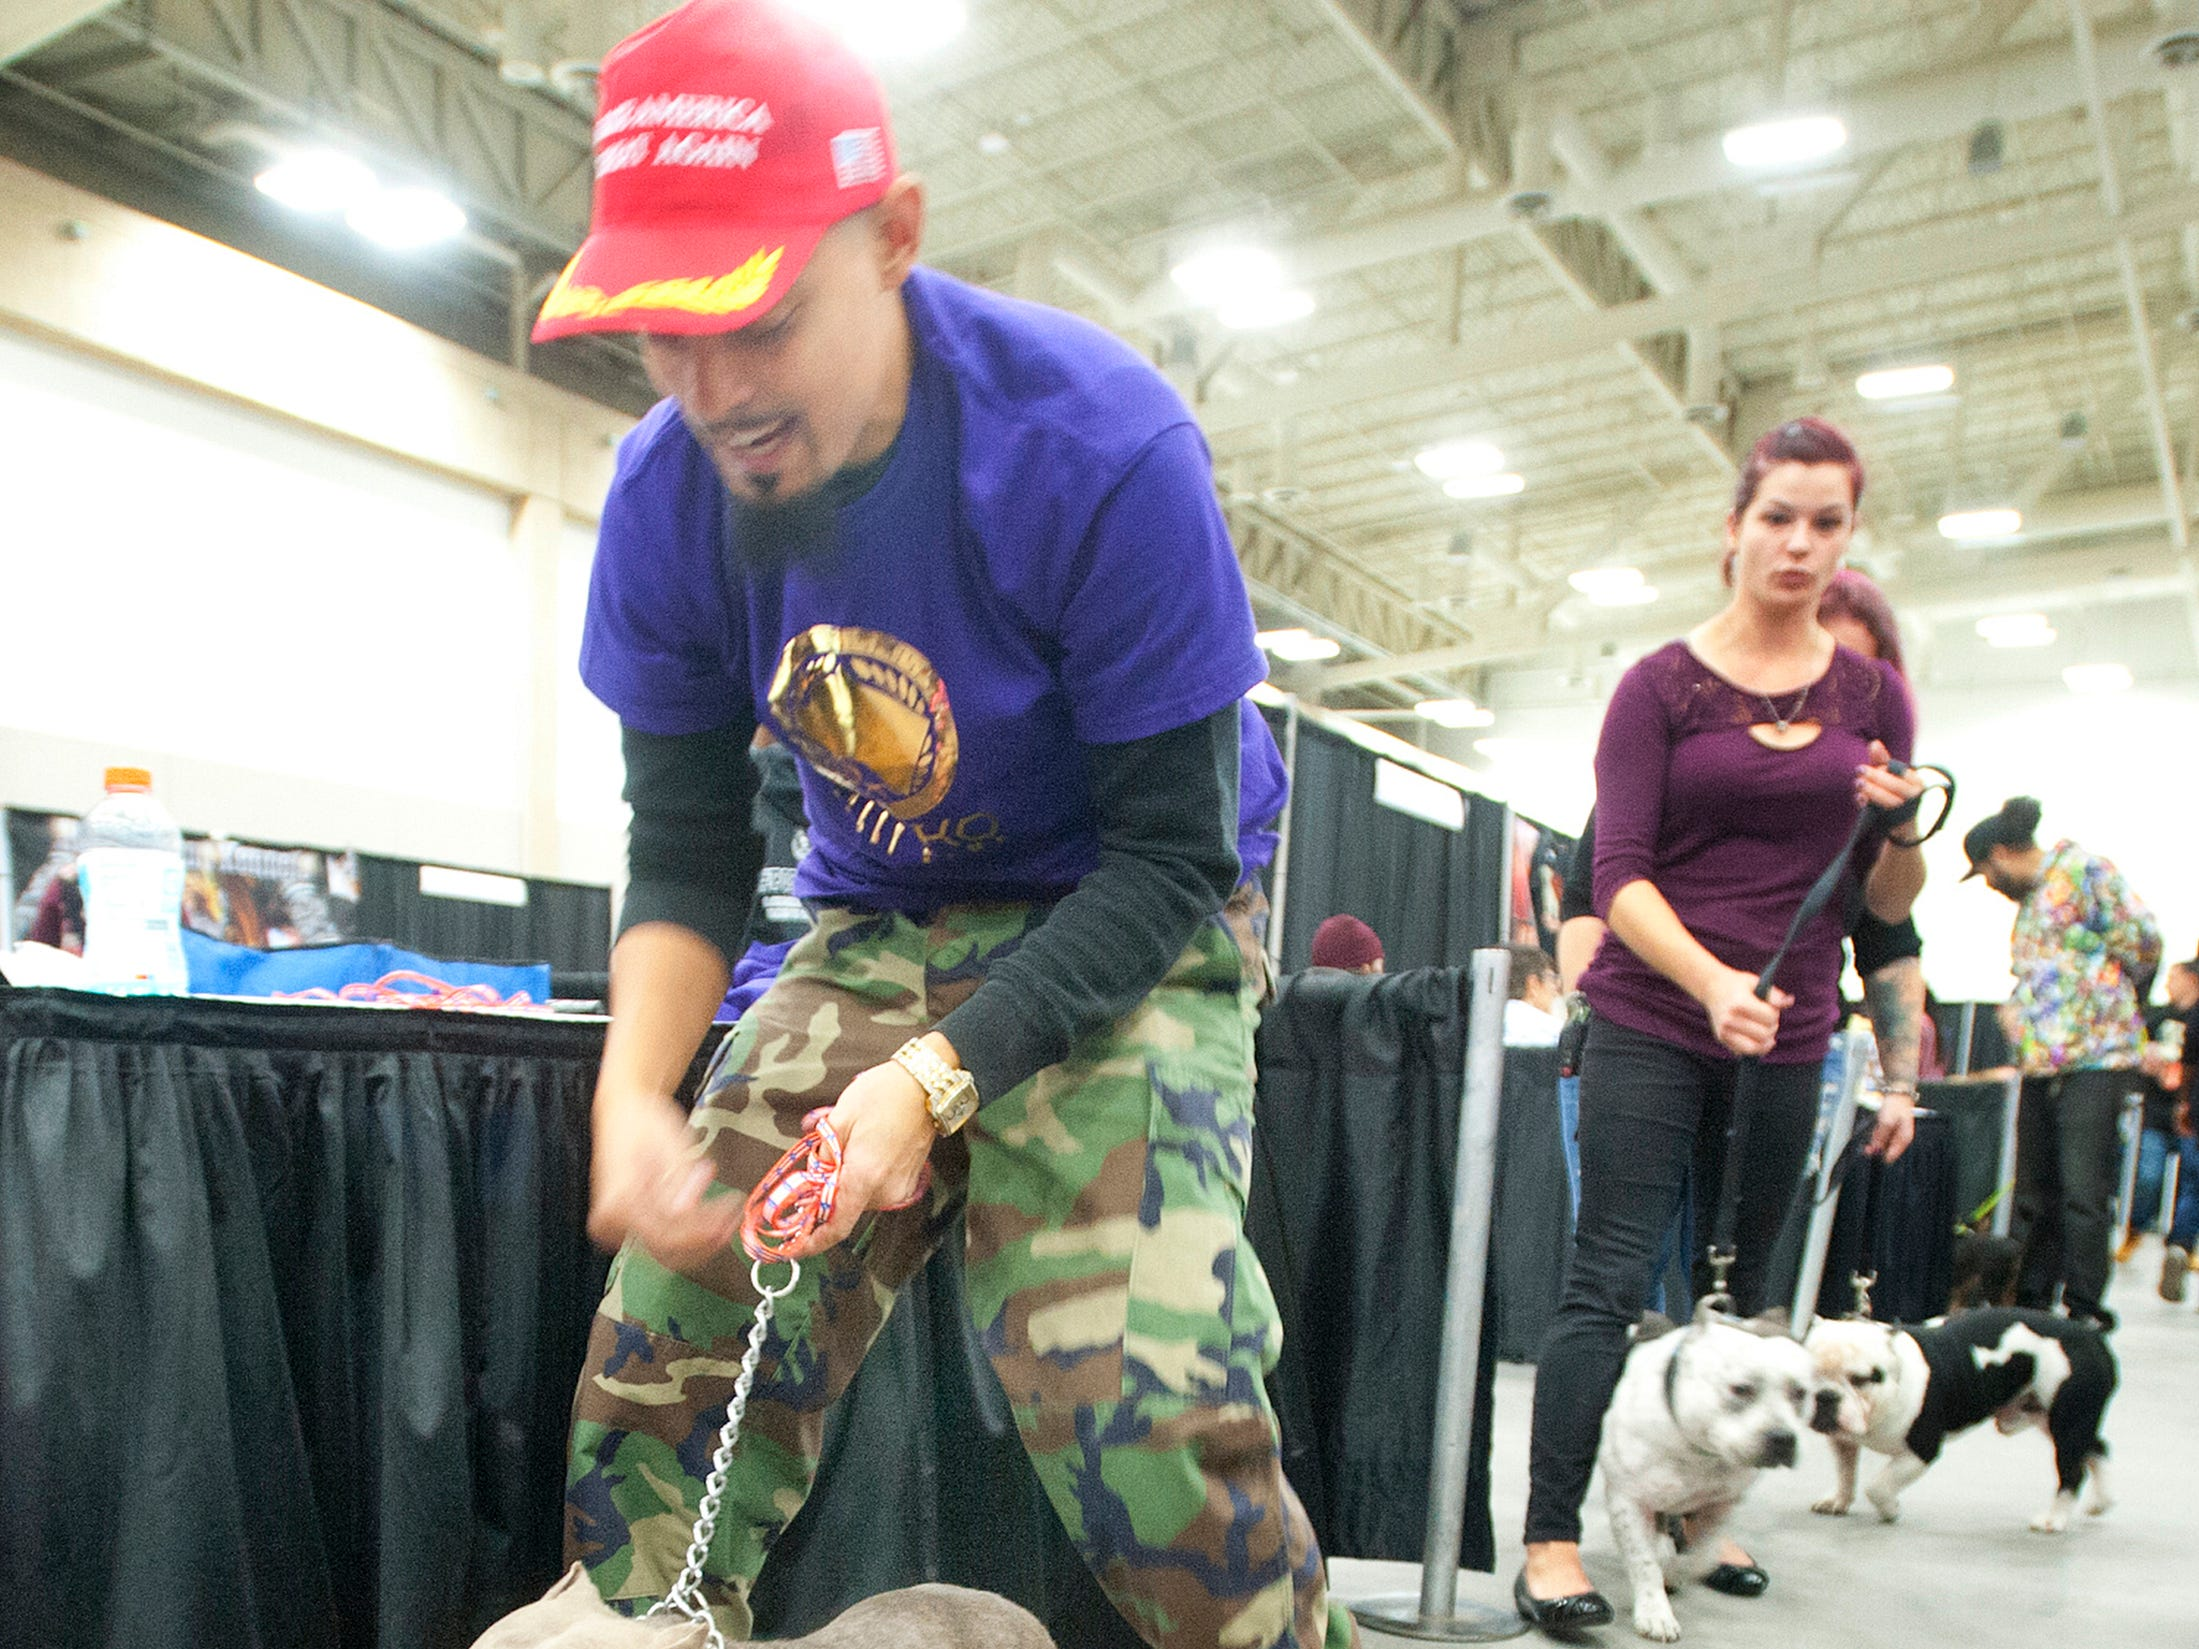 Daniel Lleras of Radcliffe, Ky., holds onto GrekoBully Kamp as the two get their photo taken at the 2018 American Bully Kennel Club's 12th annual confirmation event at the Kentucky Convention Center in Louisville.November 10, 2018